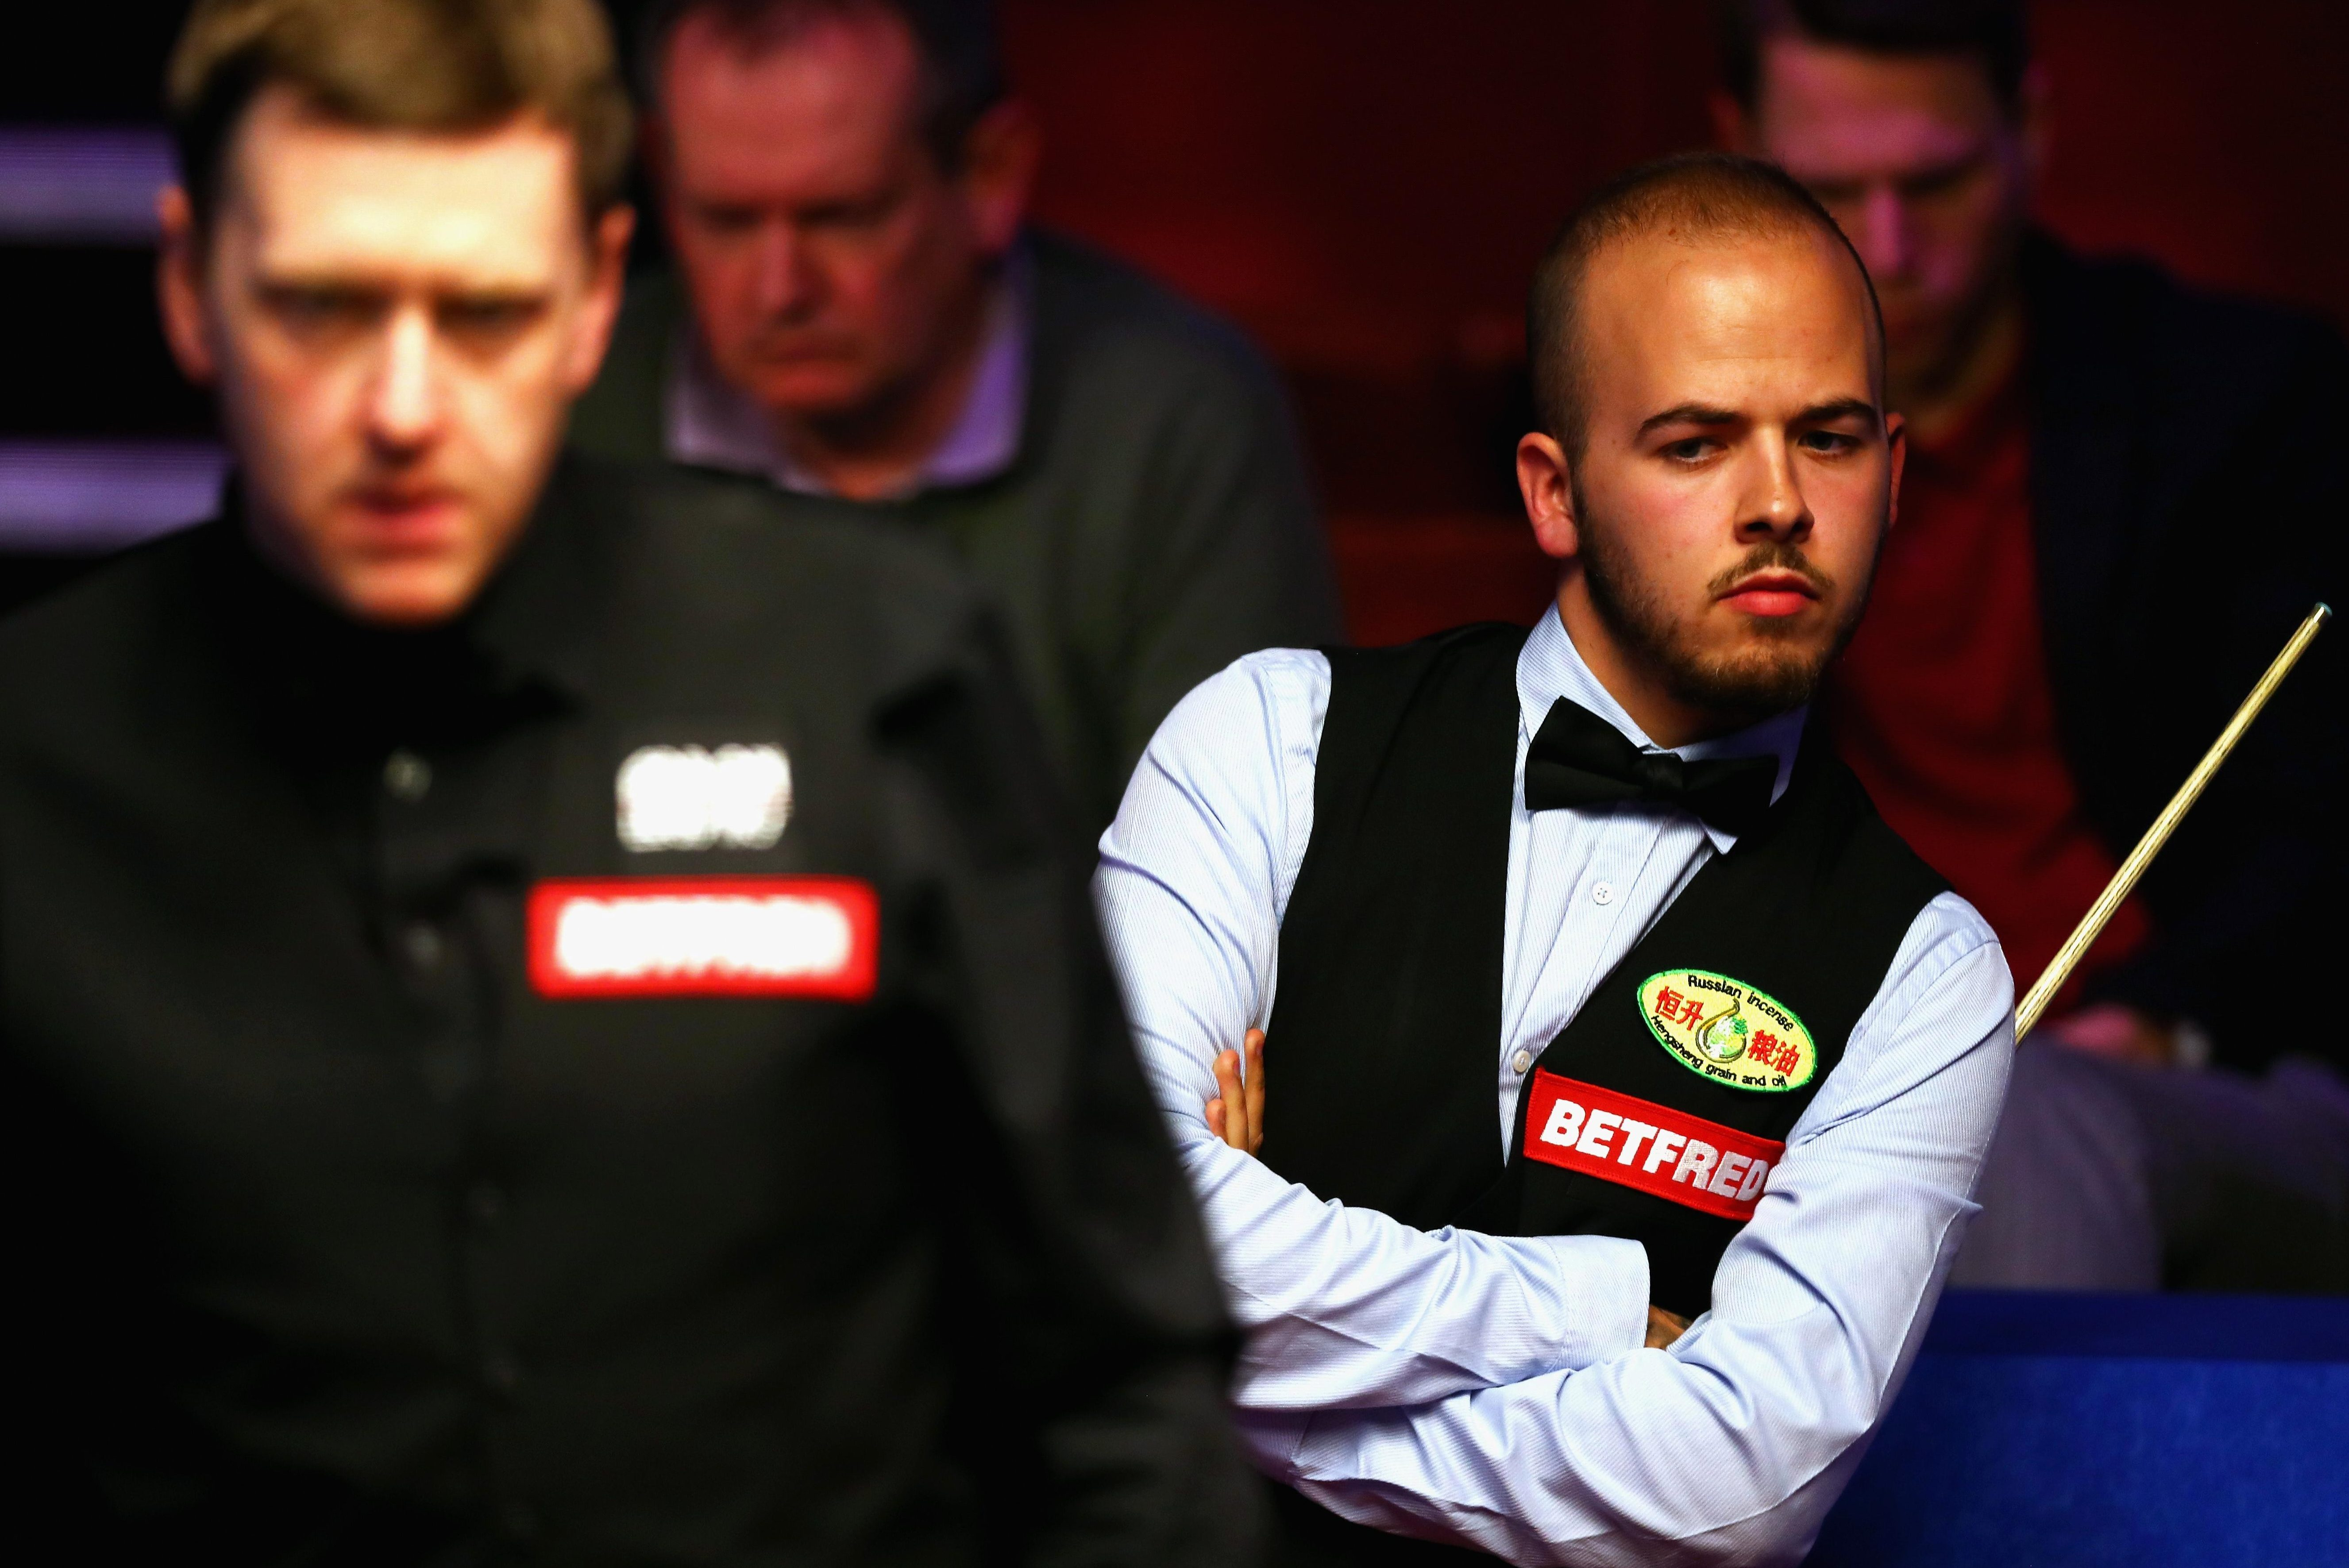 Belgium star Luca Brecel looks on as he takes on England ace Ricky Walden